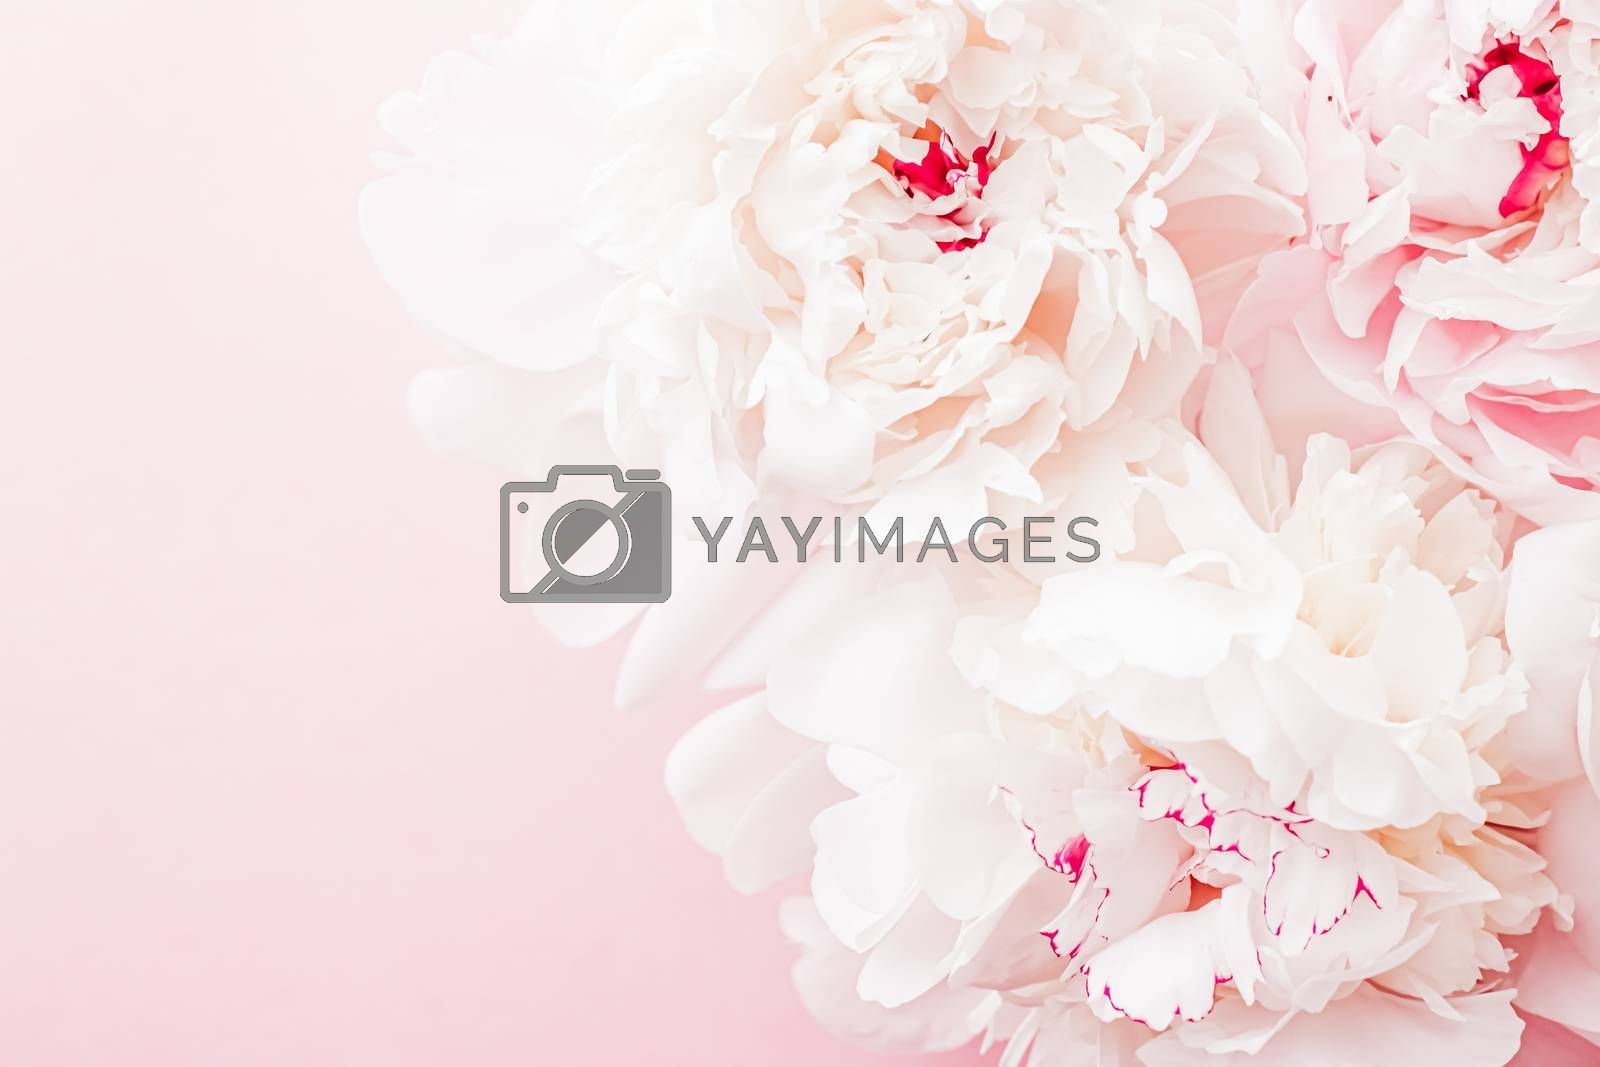 Peony flowers in bloom as floral art on pink background, wedding flatlay and luxury branding design